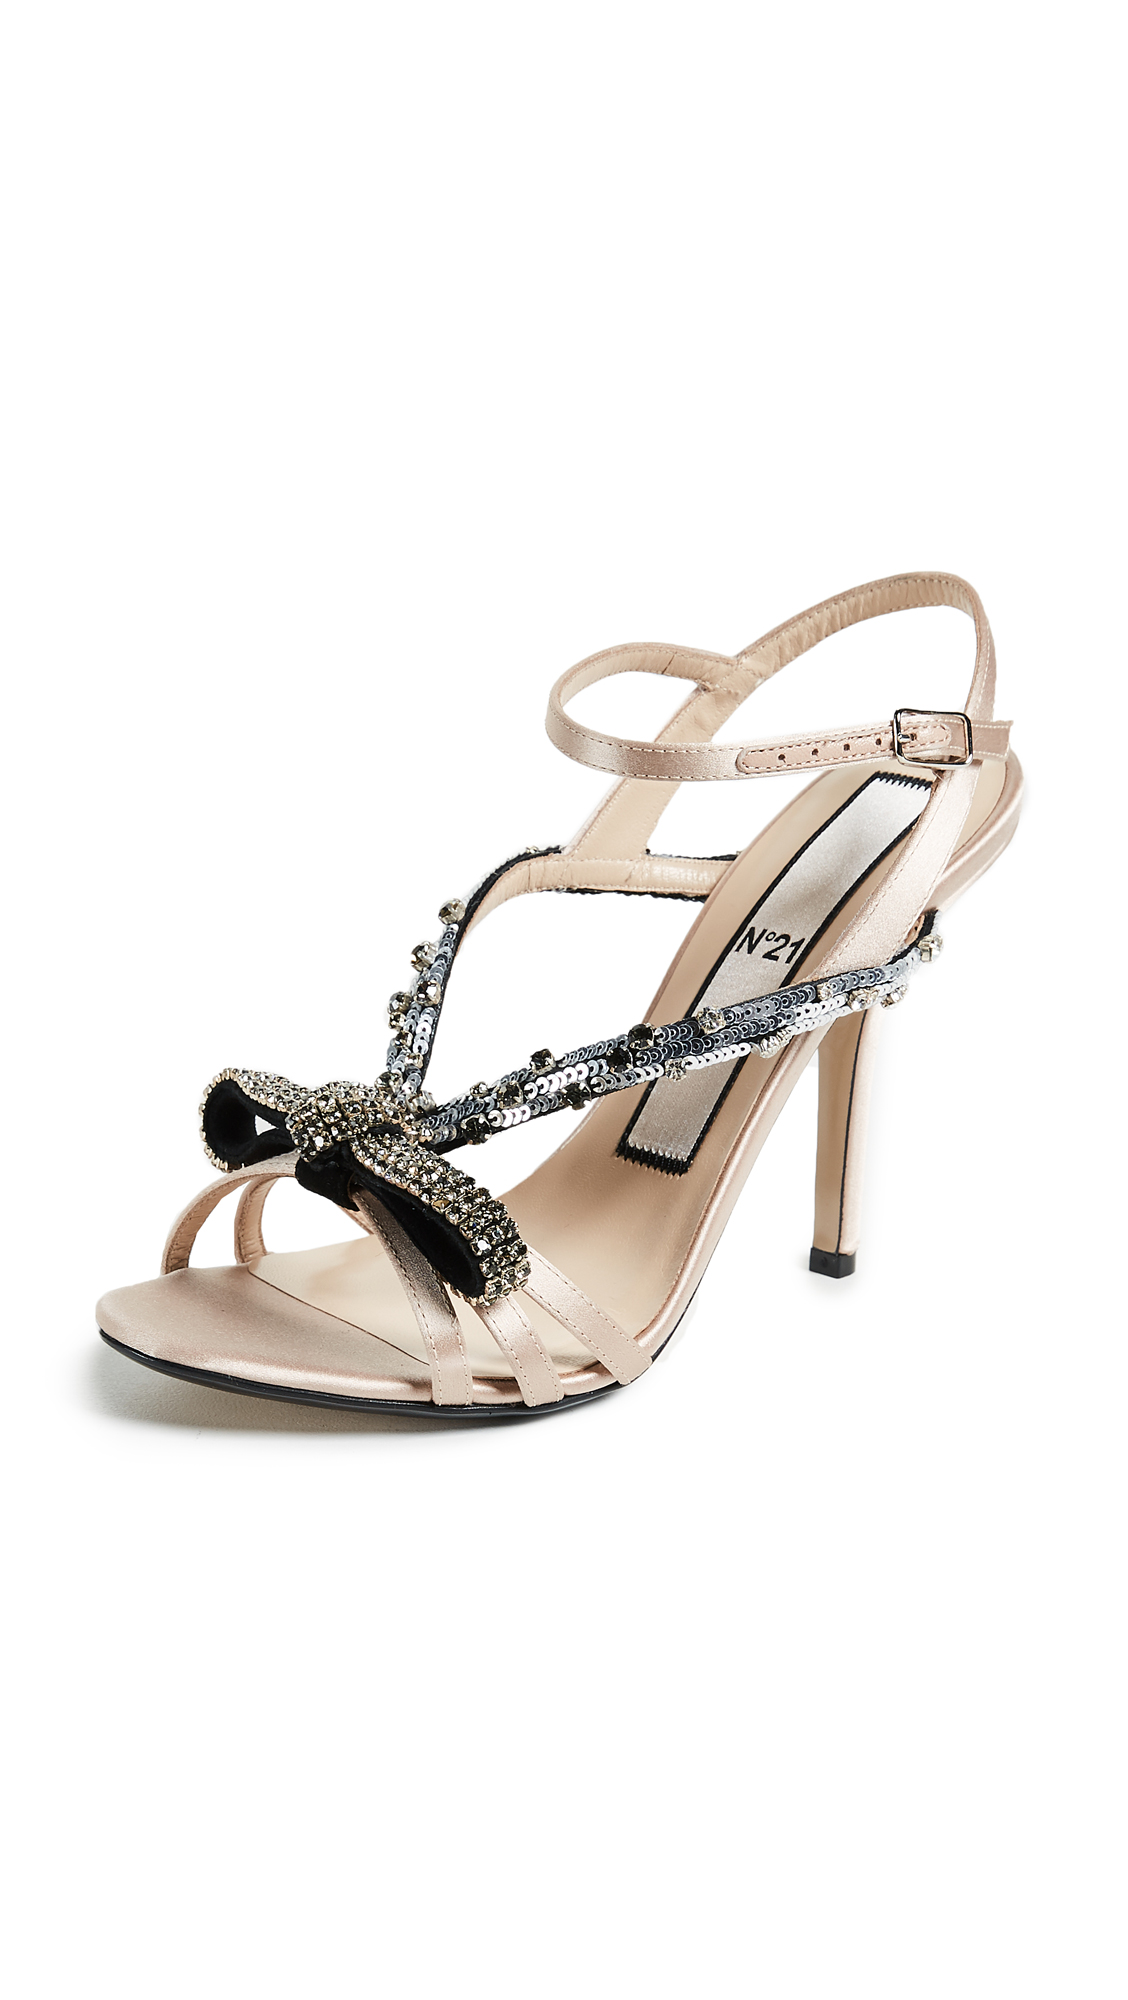 No. 21 Bow Embroidery Sandals - Nude